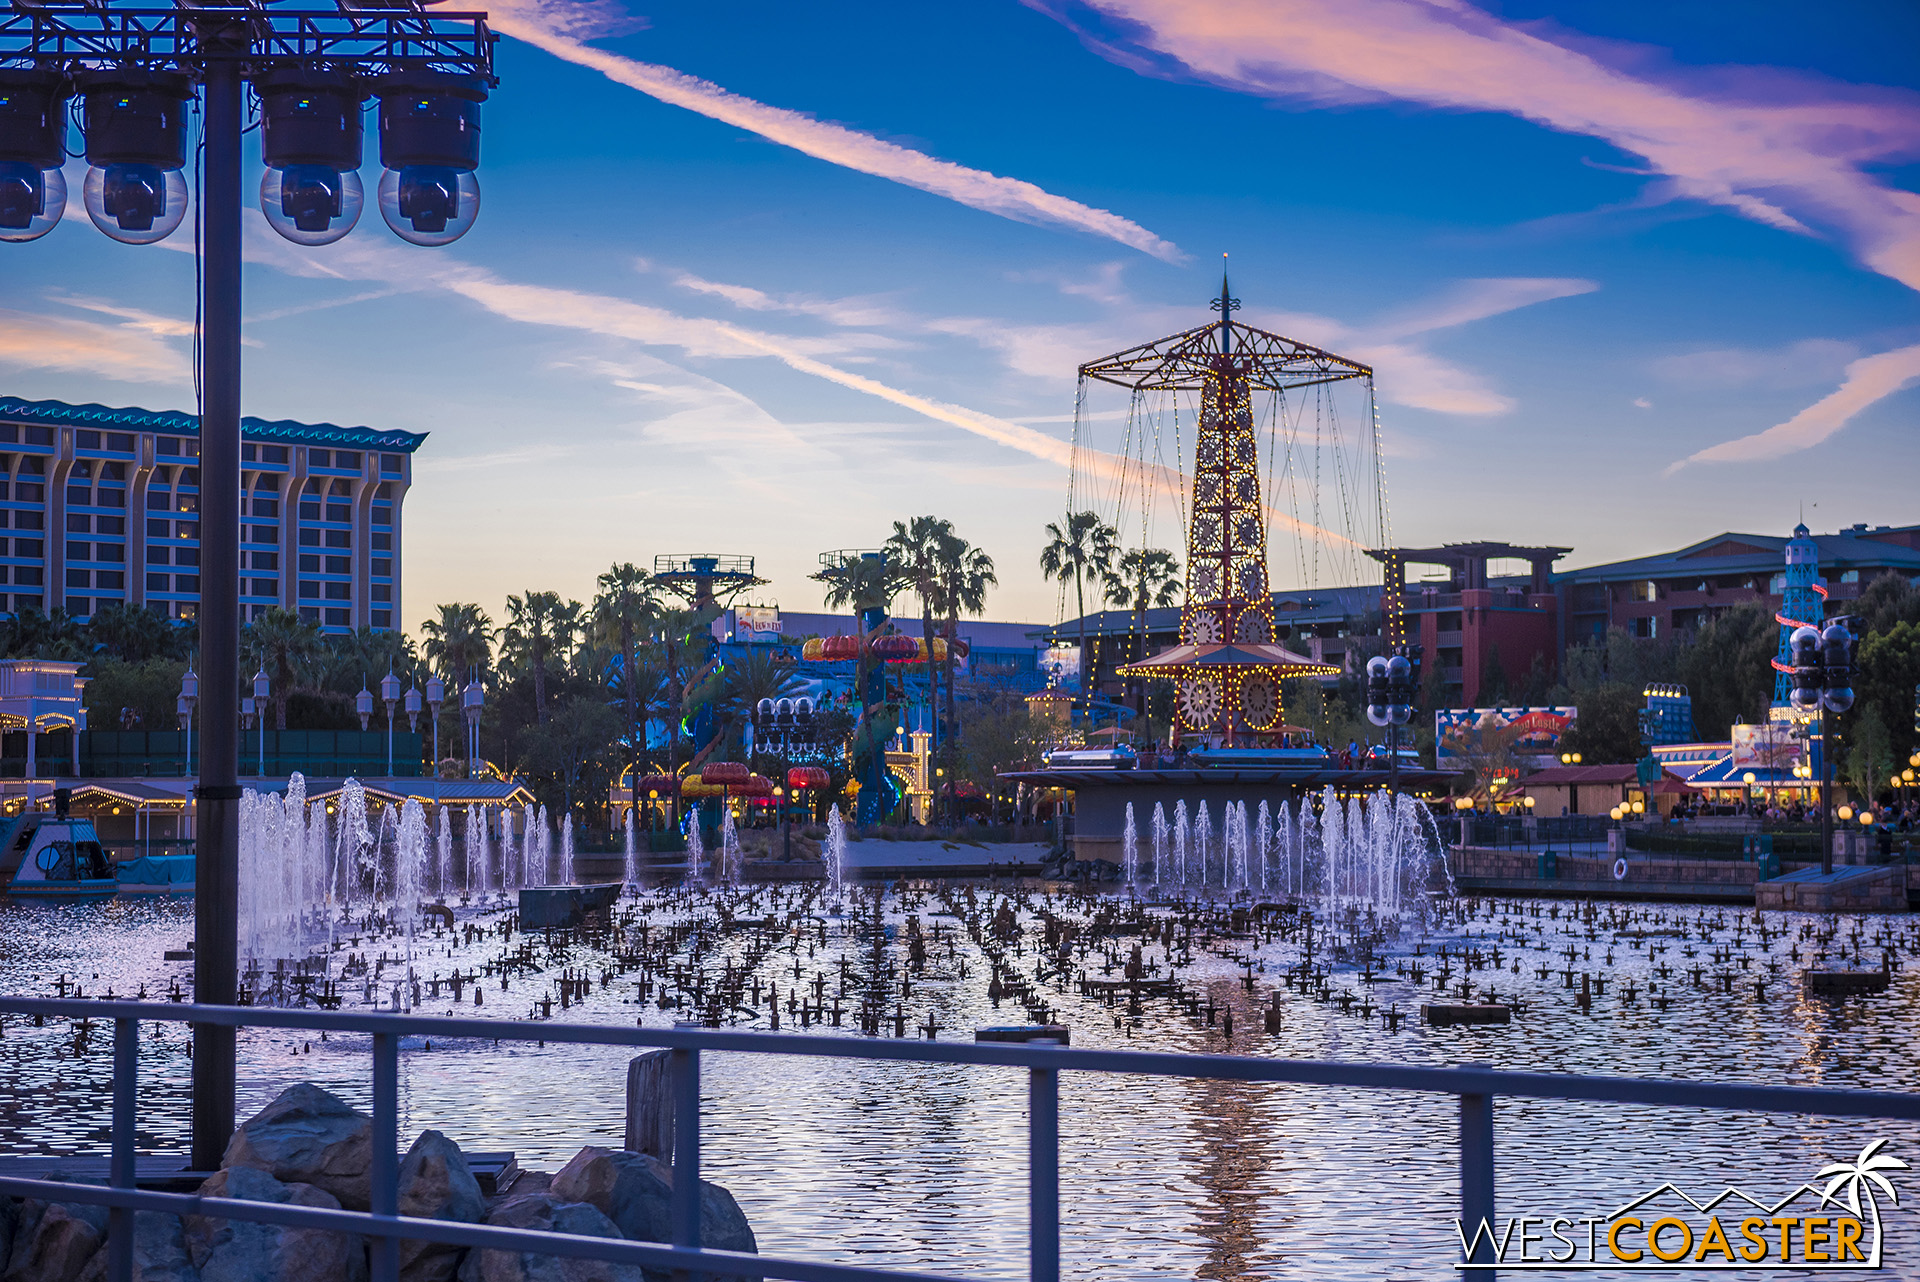 Anyway, the World of Color fountains have been fixed since they went down last year.